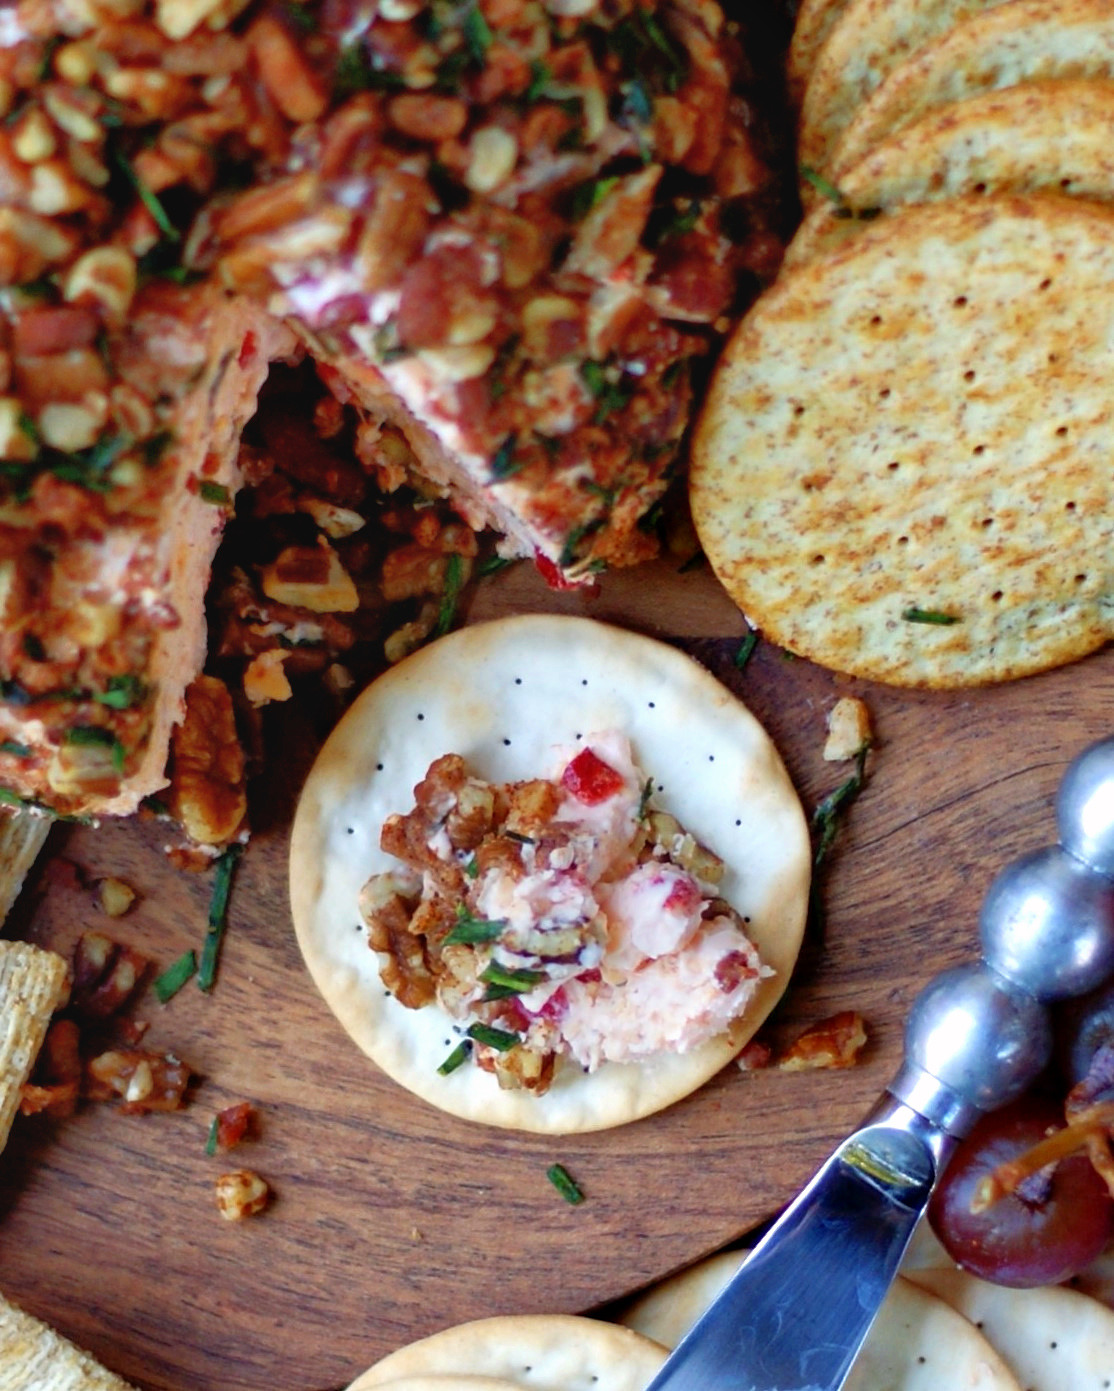 Pimento cheese ball with pecans, cream cheese and bacon being served